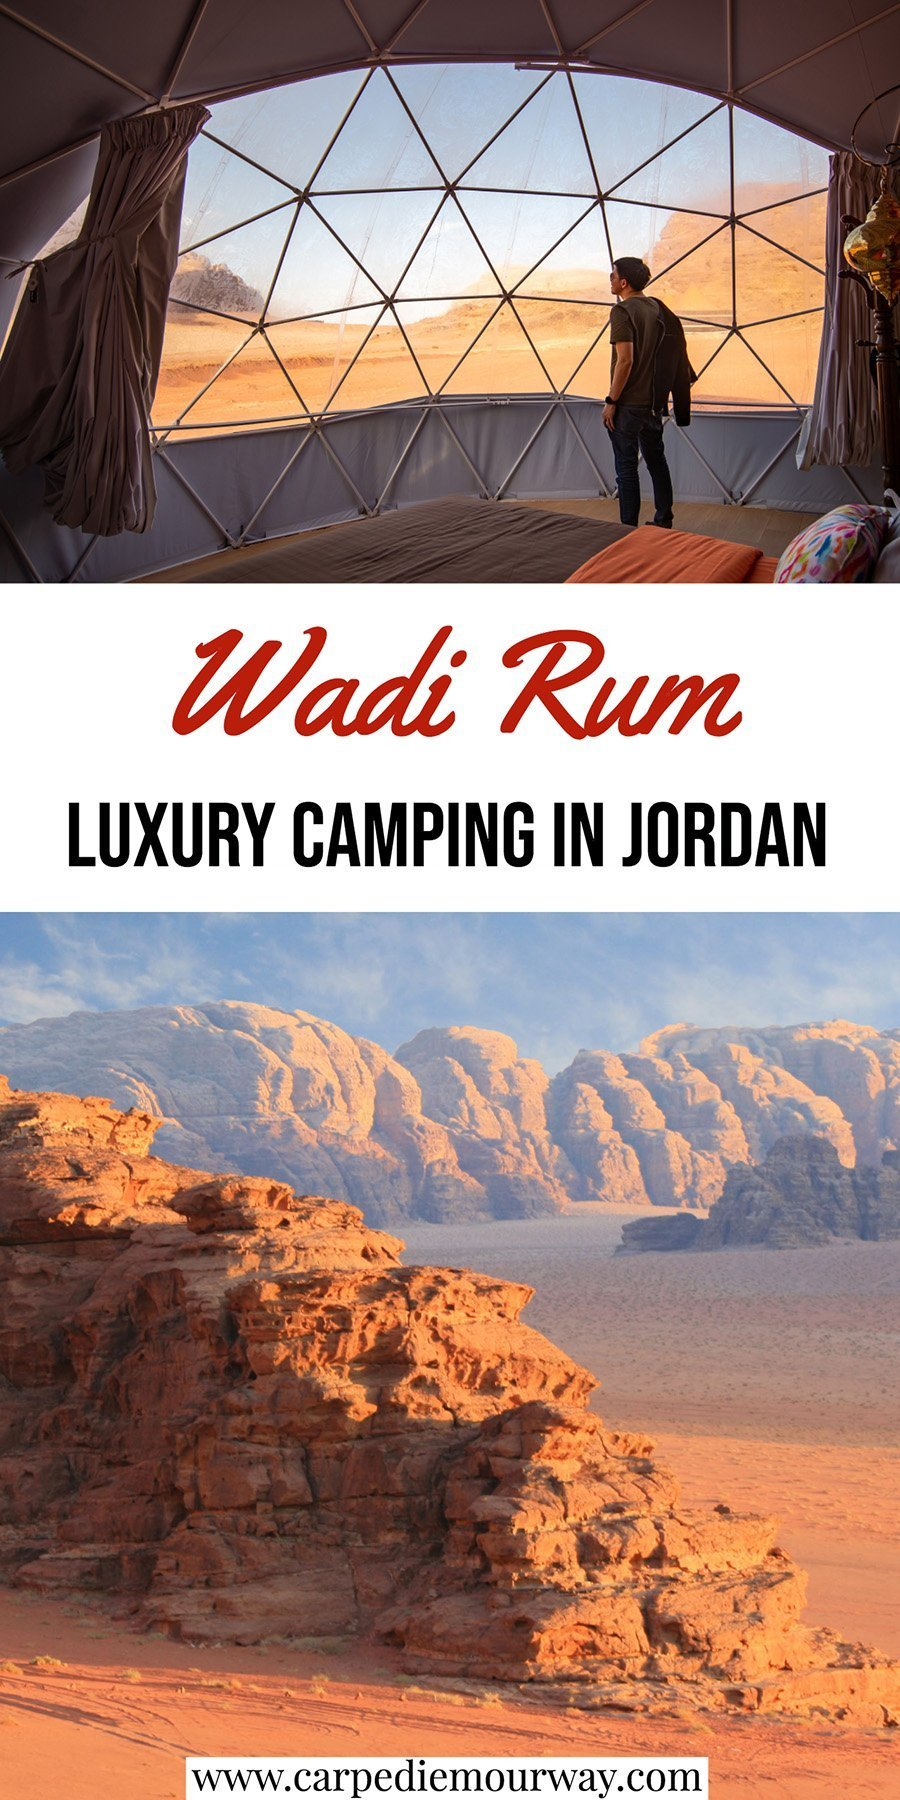 Wadi Rum Camp | Luxury Camps in Jordan Desert